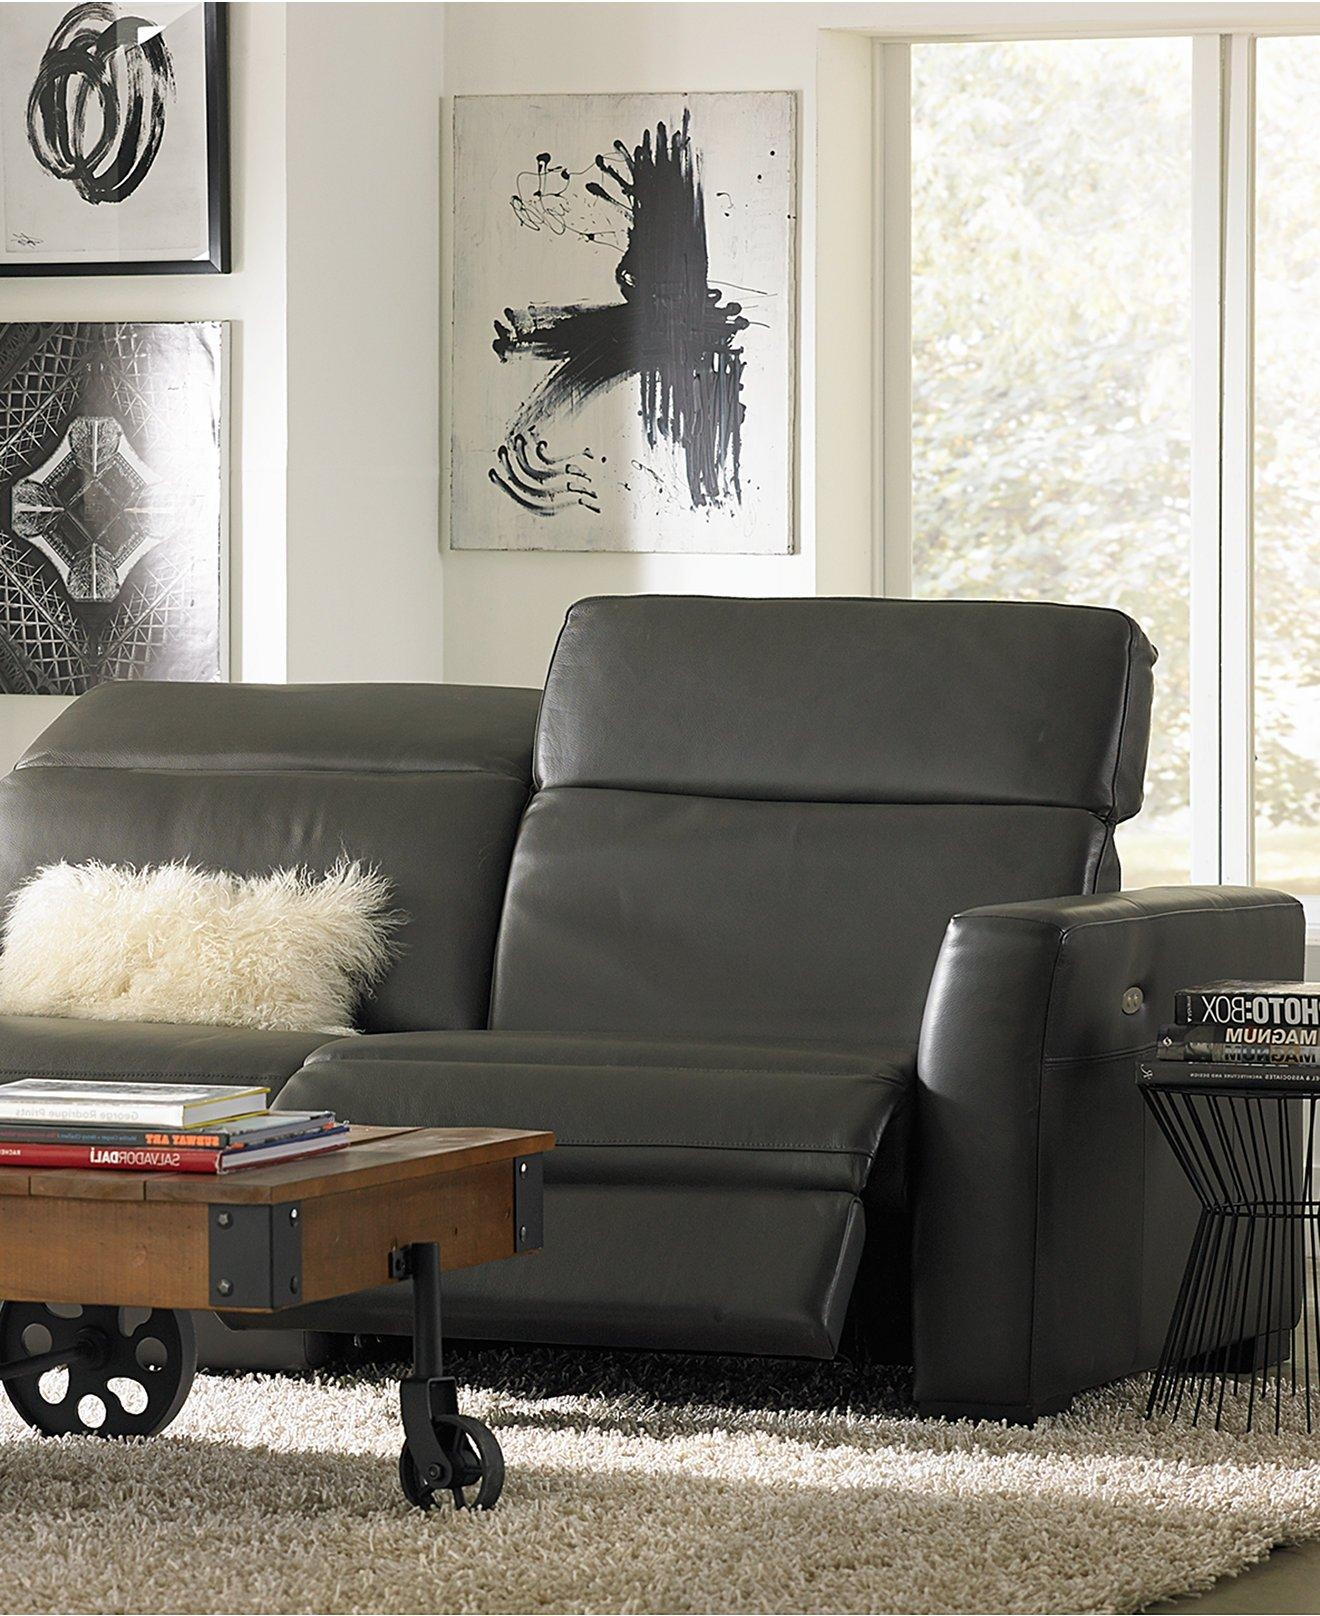 Sofas: Macys Leather Furniture | Macys Sectional | Macys Sectional Inside 6 Piece Leather Sectional Sofa (Image 12 of 15)